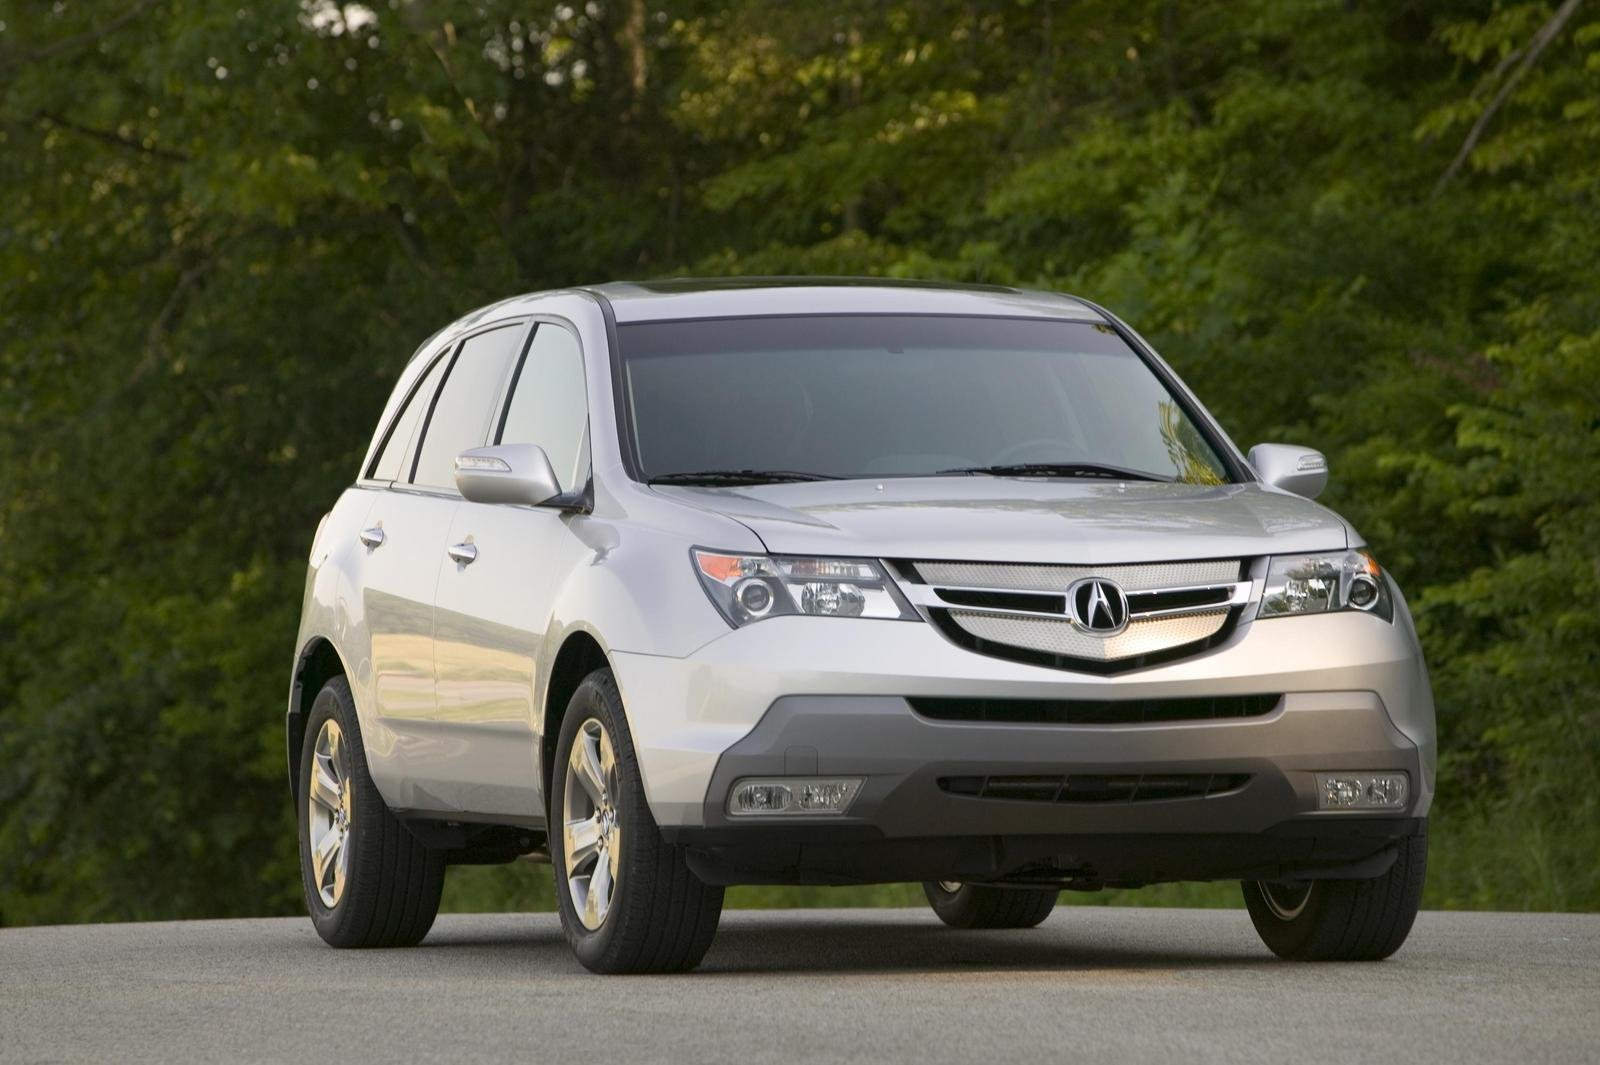 2007 acura mdx review top speed. Black Bedroom Furniture Sets. Home Design Ideas